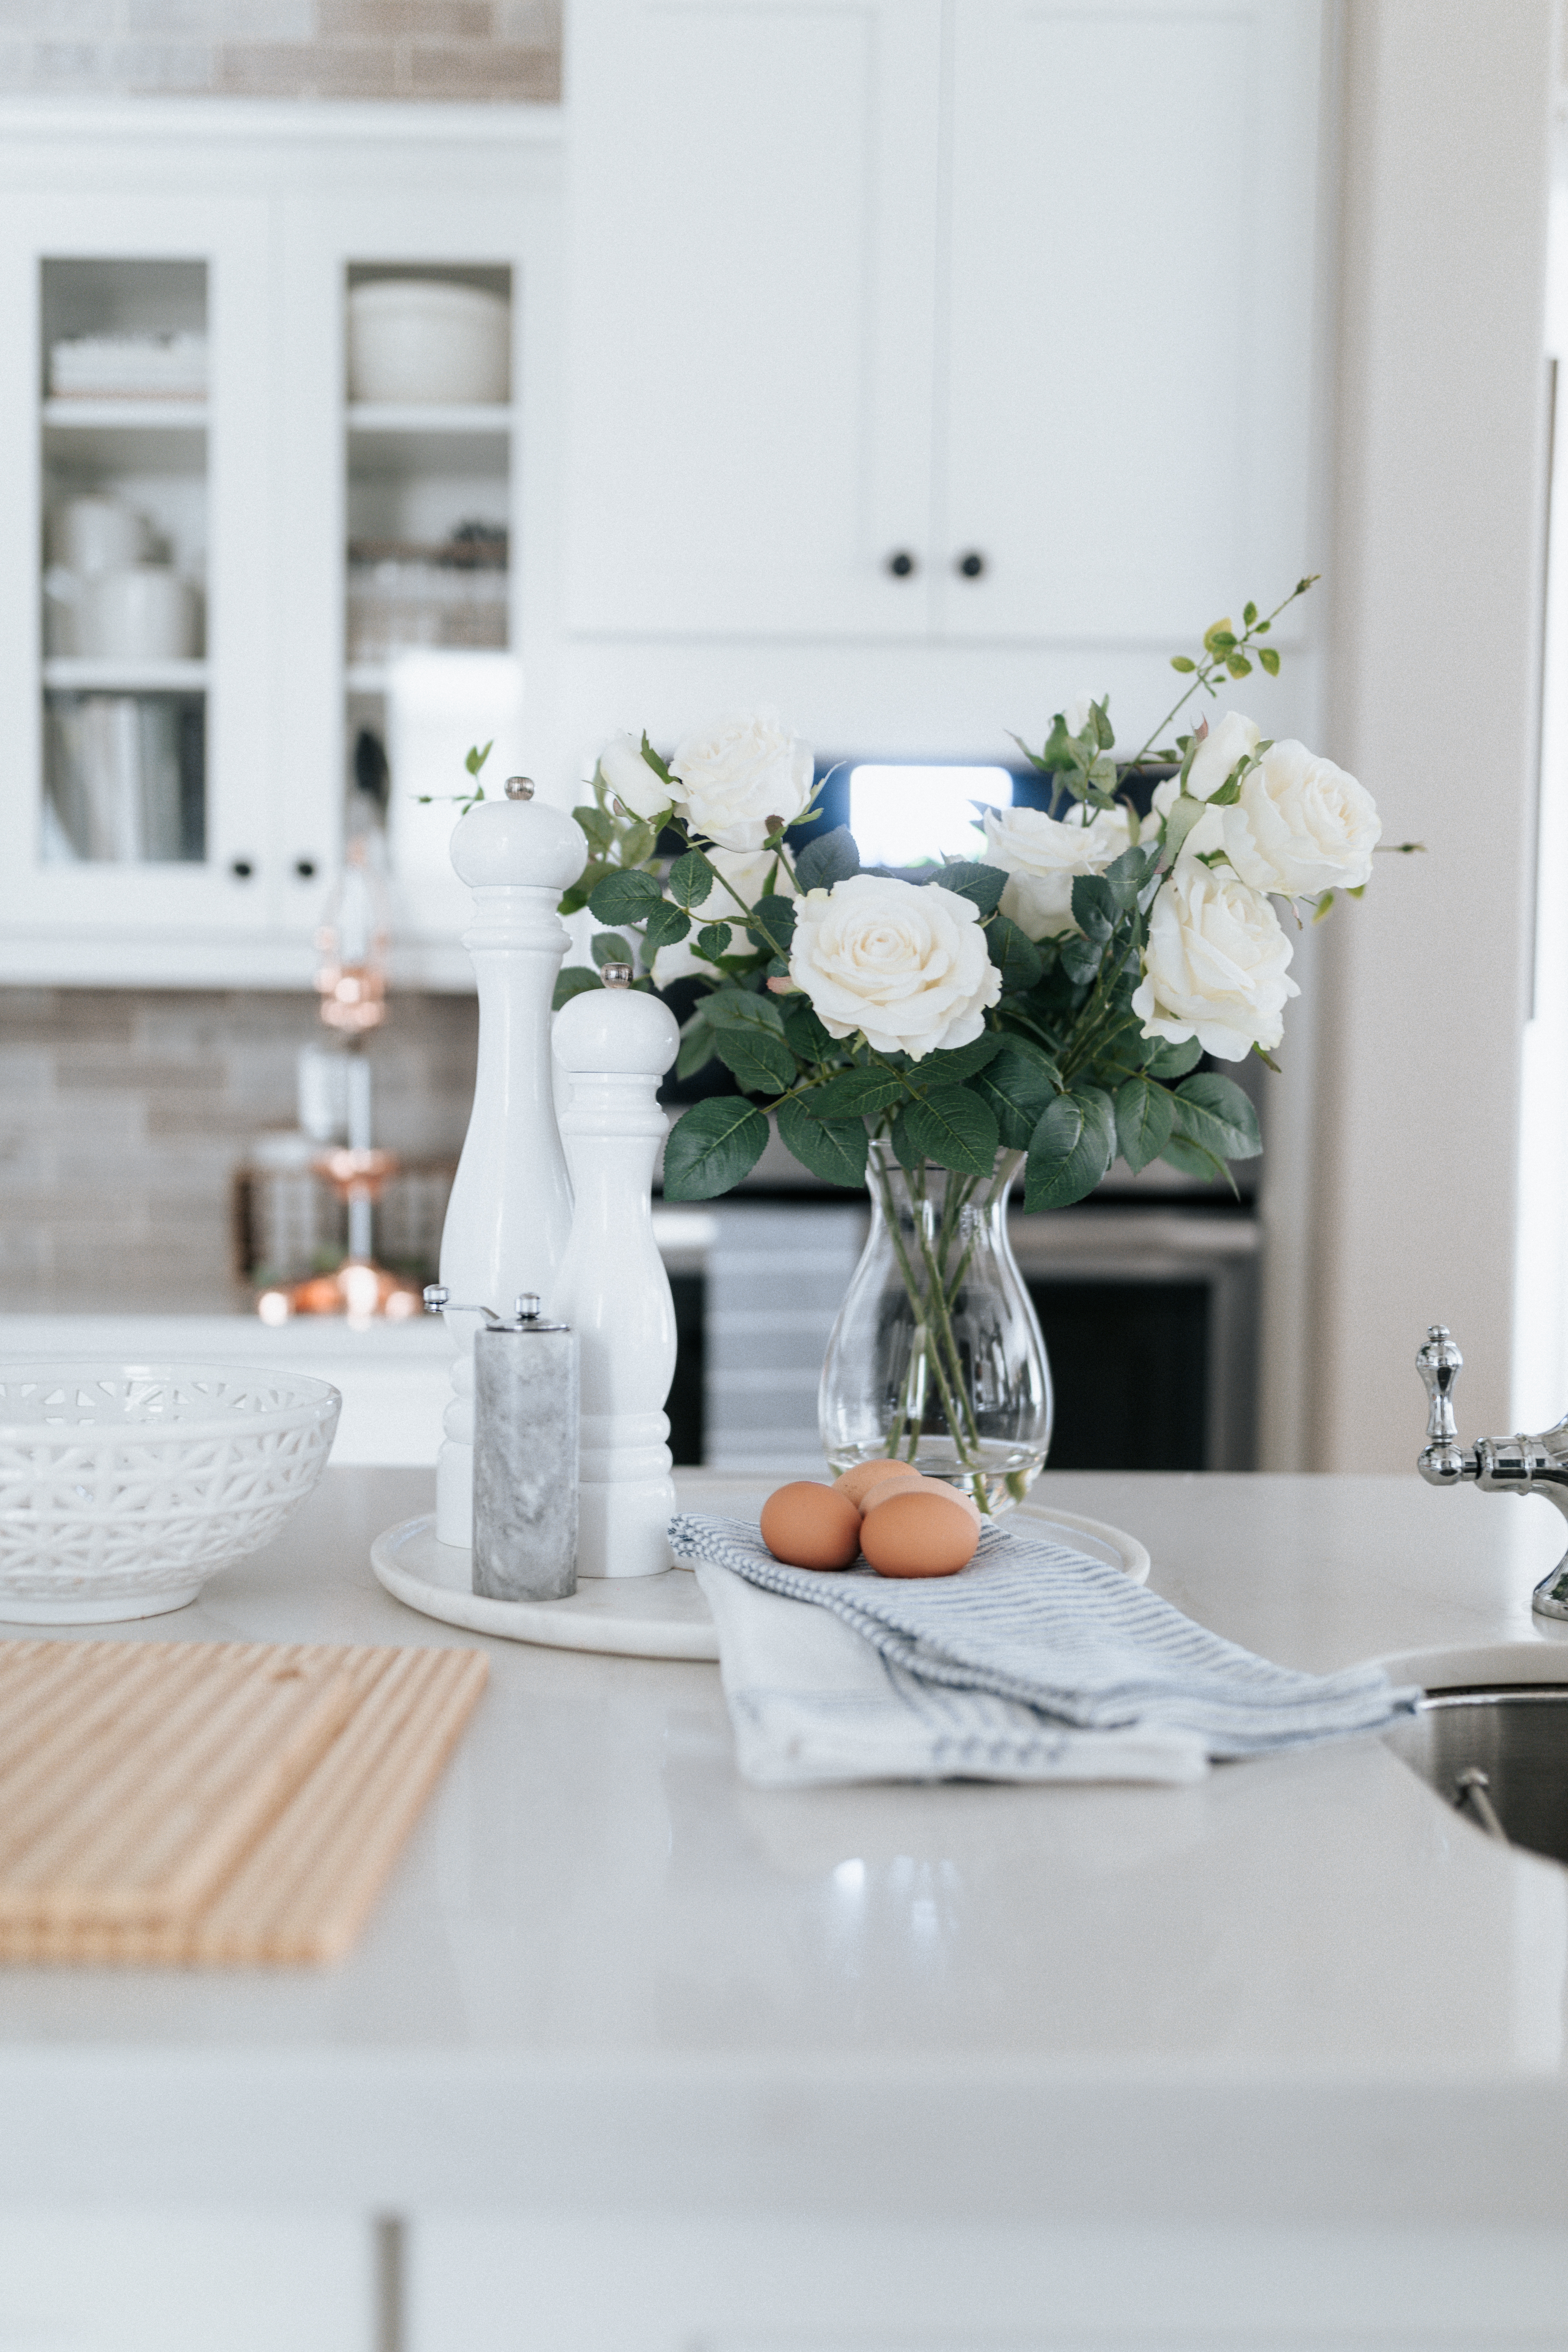 Flowers on the Kitchen Counter